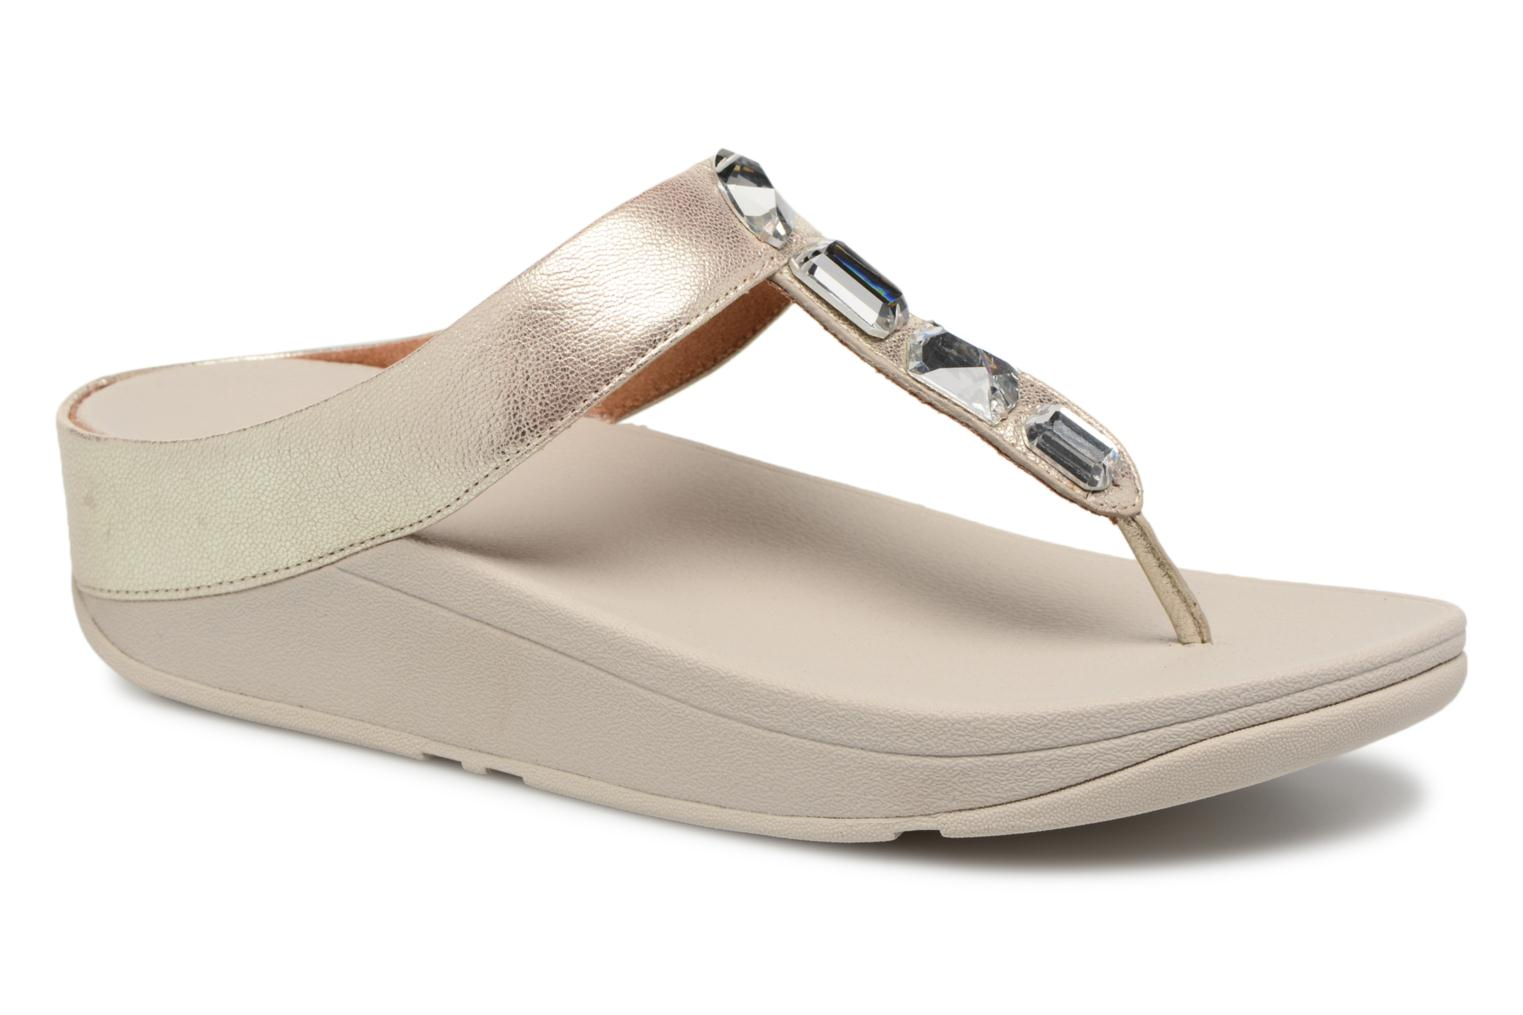 Marques Chaussure femme FitFlop femme Roka Silver